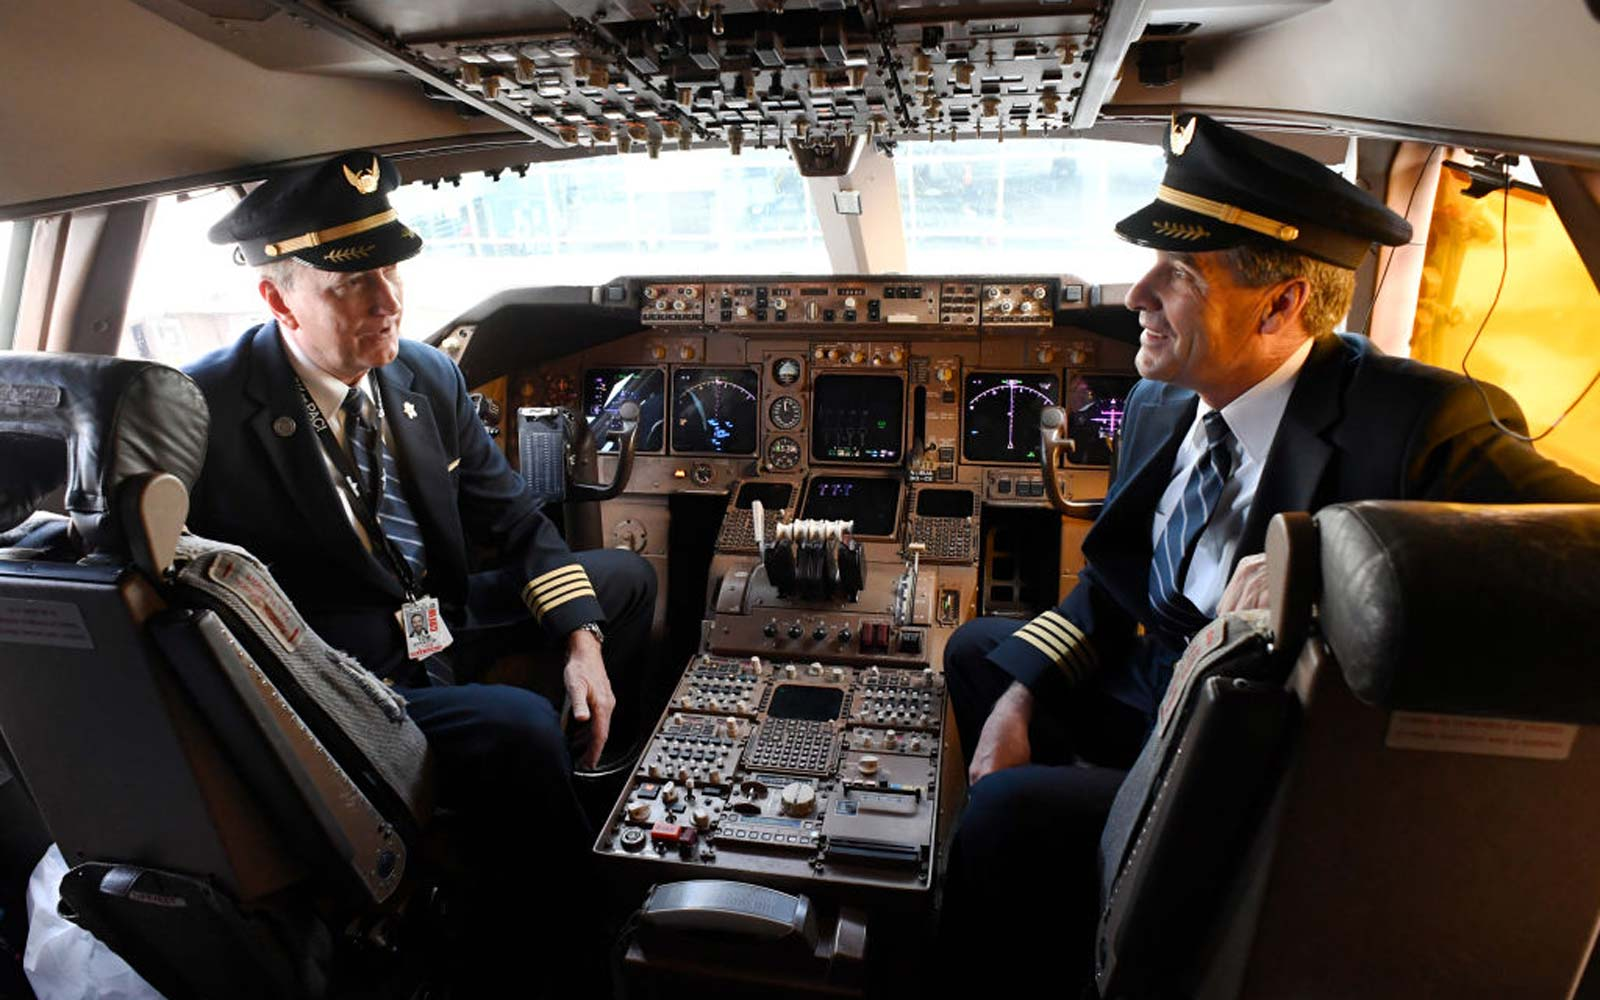 Flying Will Become More Dangerous As Government Shutdown Continues, Airline Pilots Warn